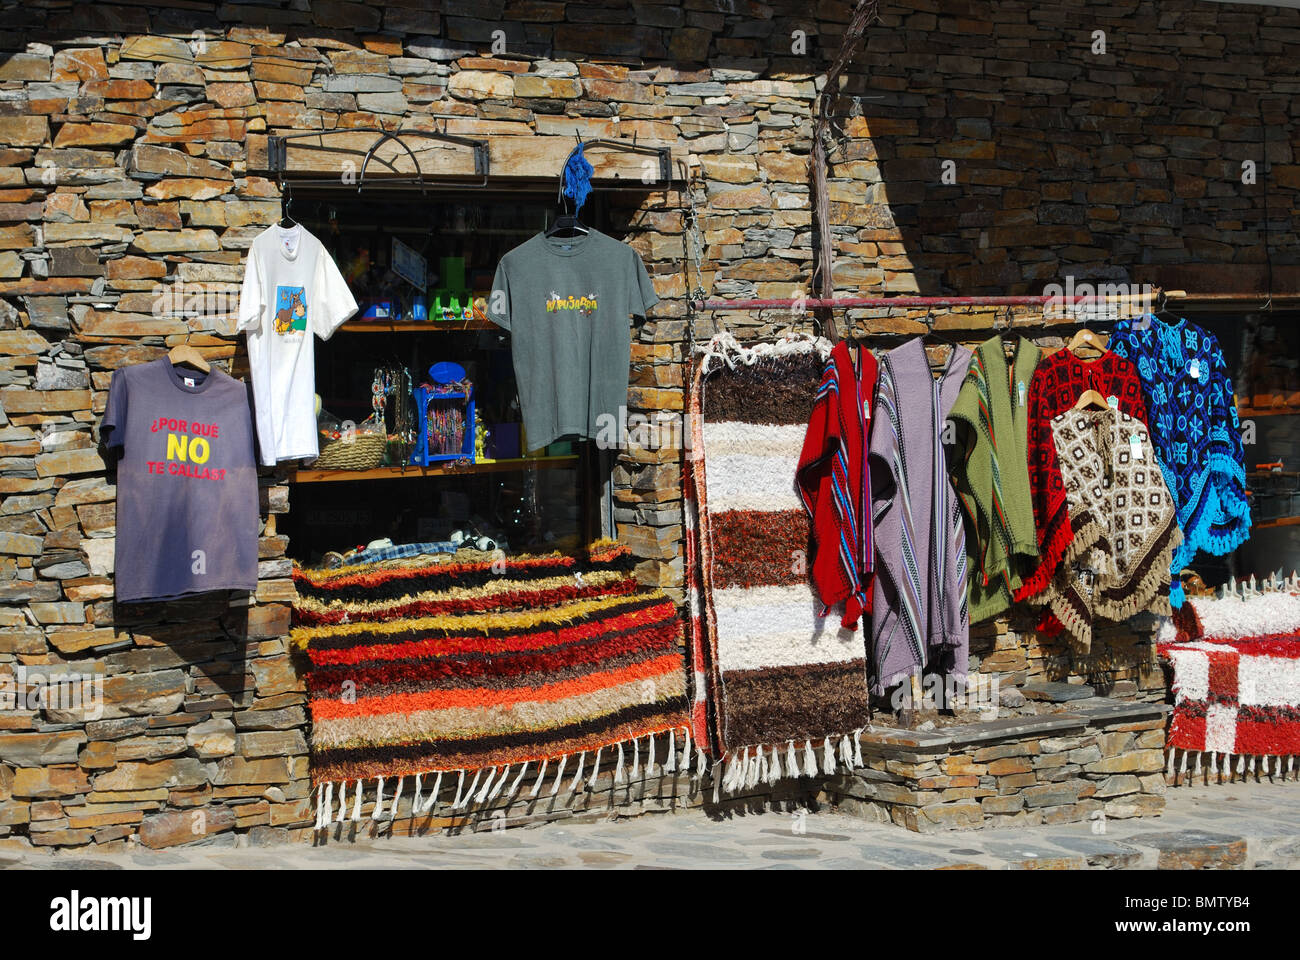 Shop selling locally made rugs and ponchos, Trevelez, Las Alpujarras, Granada Province, Andalucia, Spain, Western - Stock Image